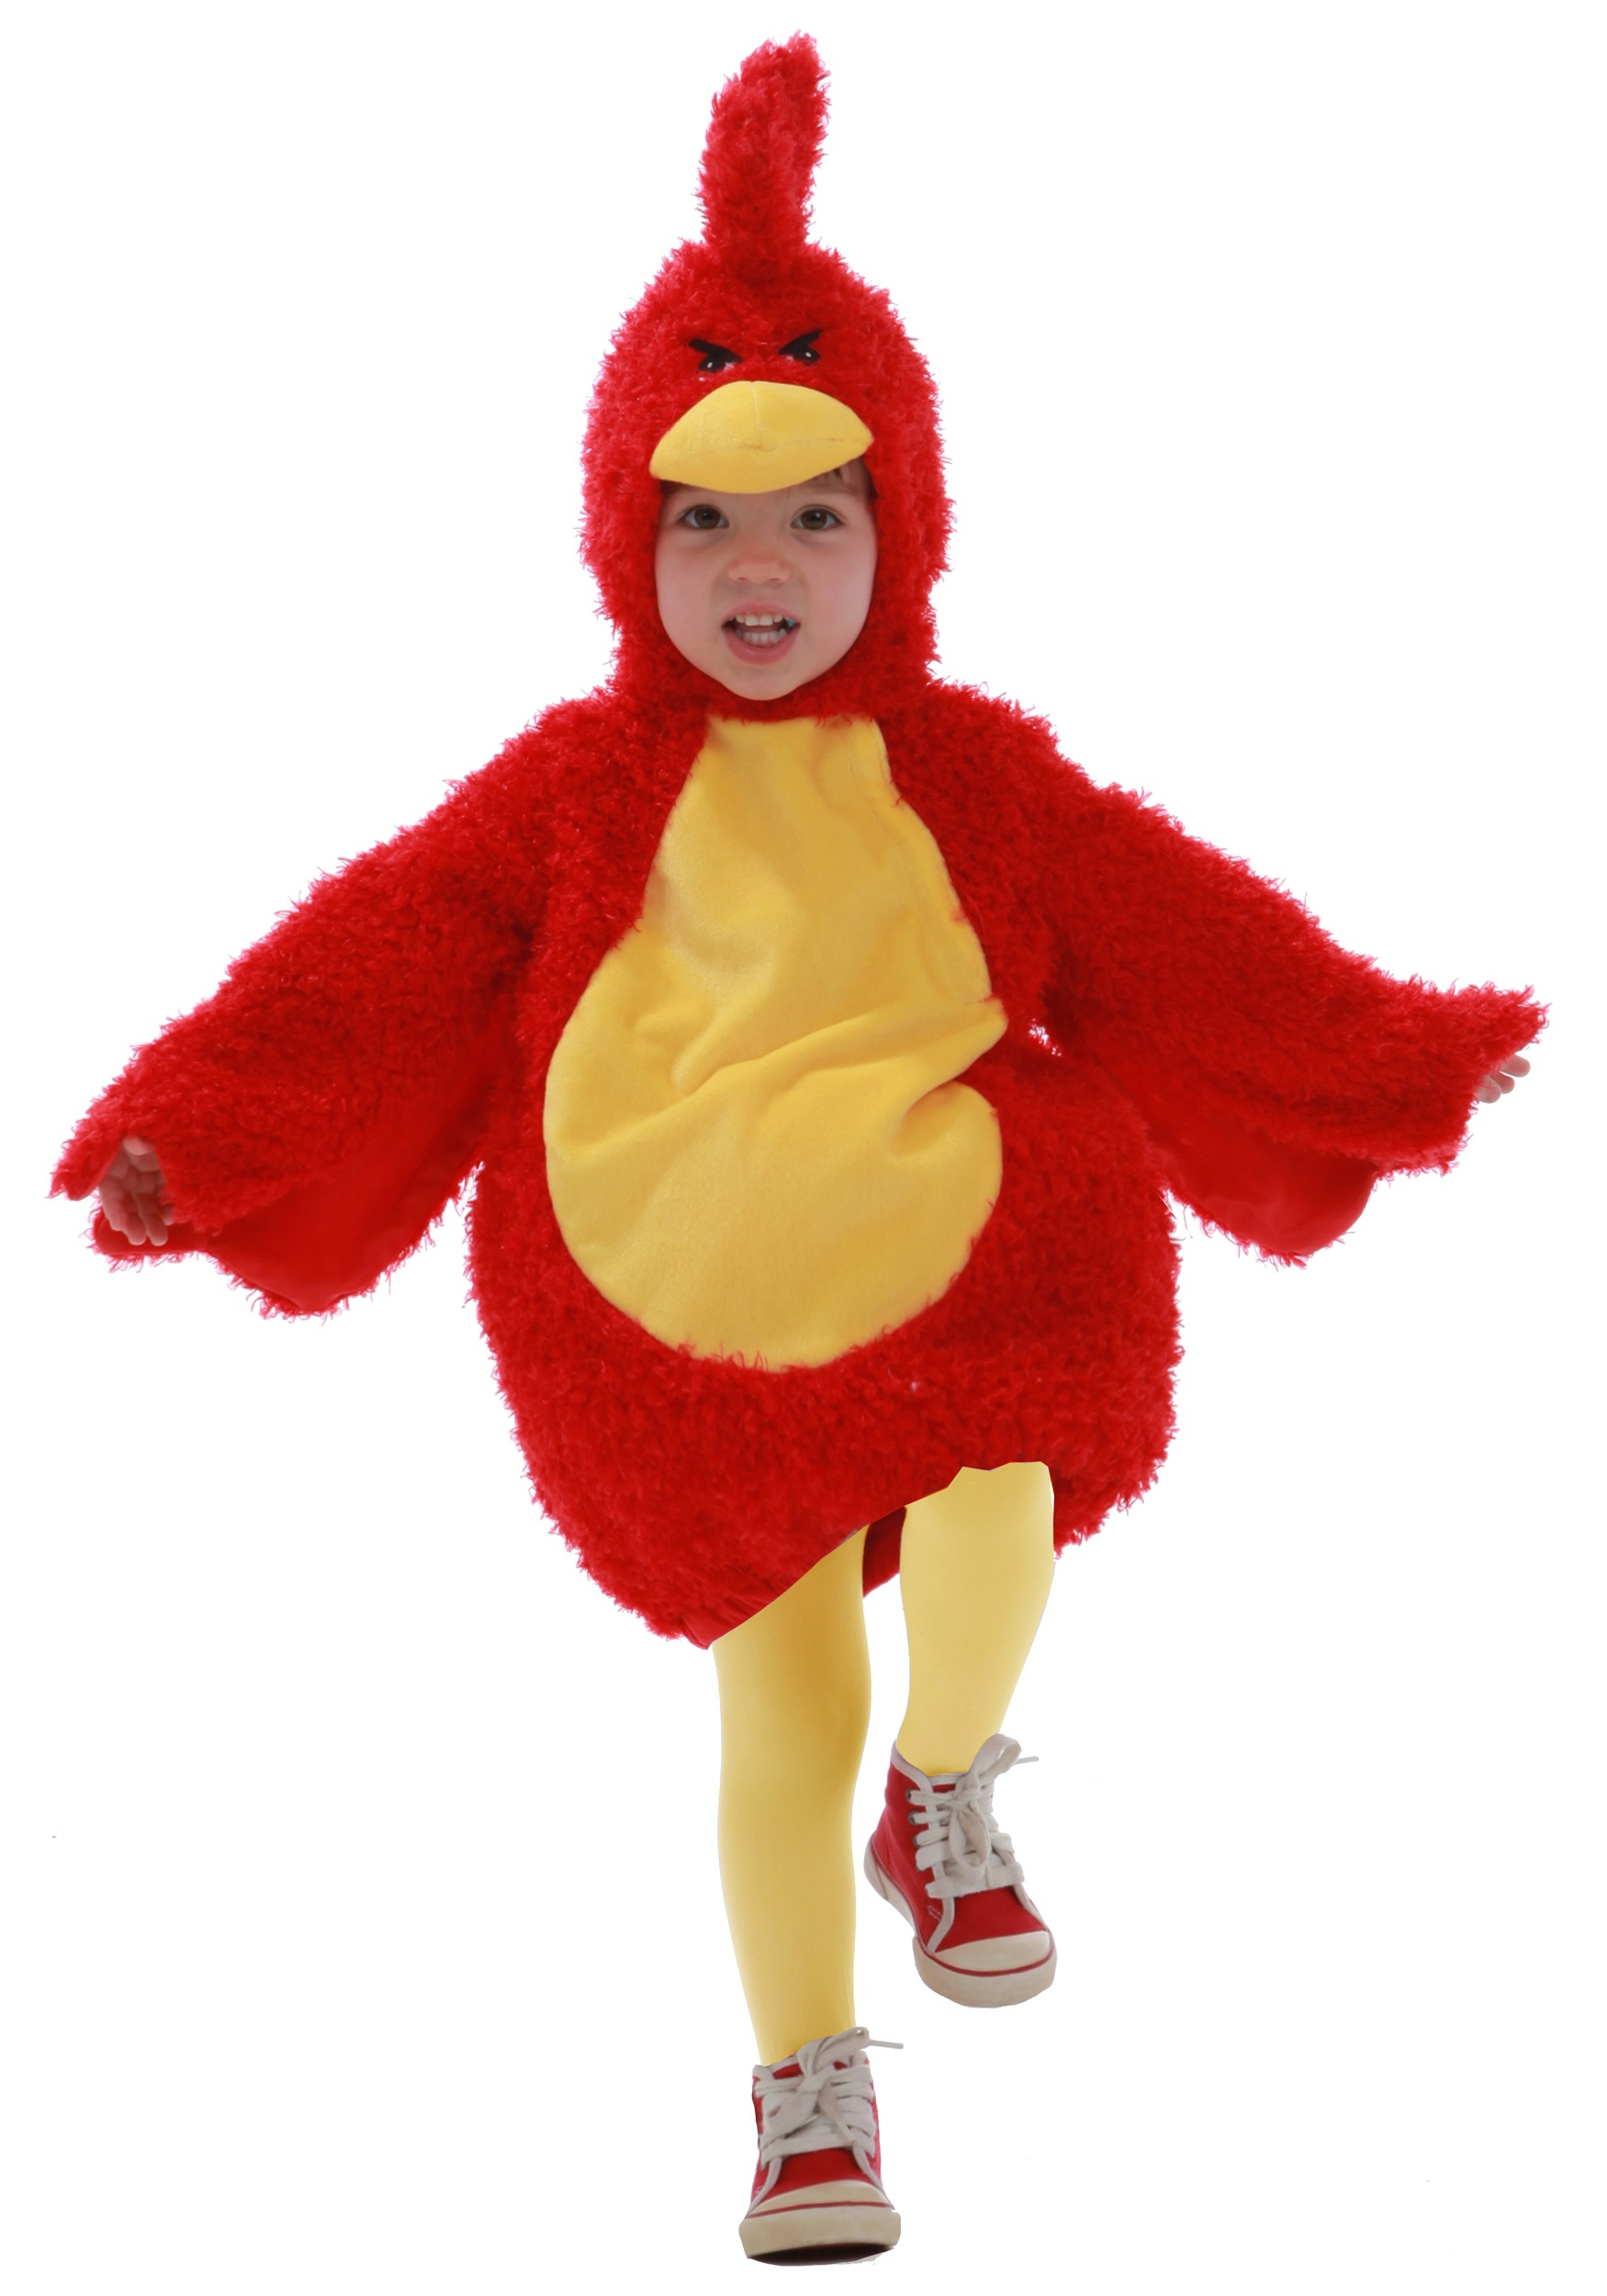 Toddler Red Grumpy Bird Costume  sc 1 st  Halloween Costumes & Toddler Red Grumpy Bird Costume - Halloween Costumes